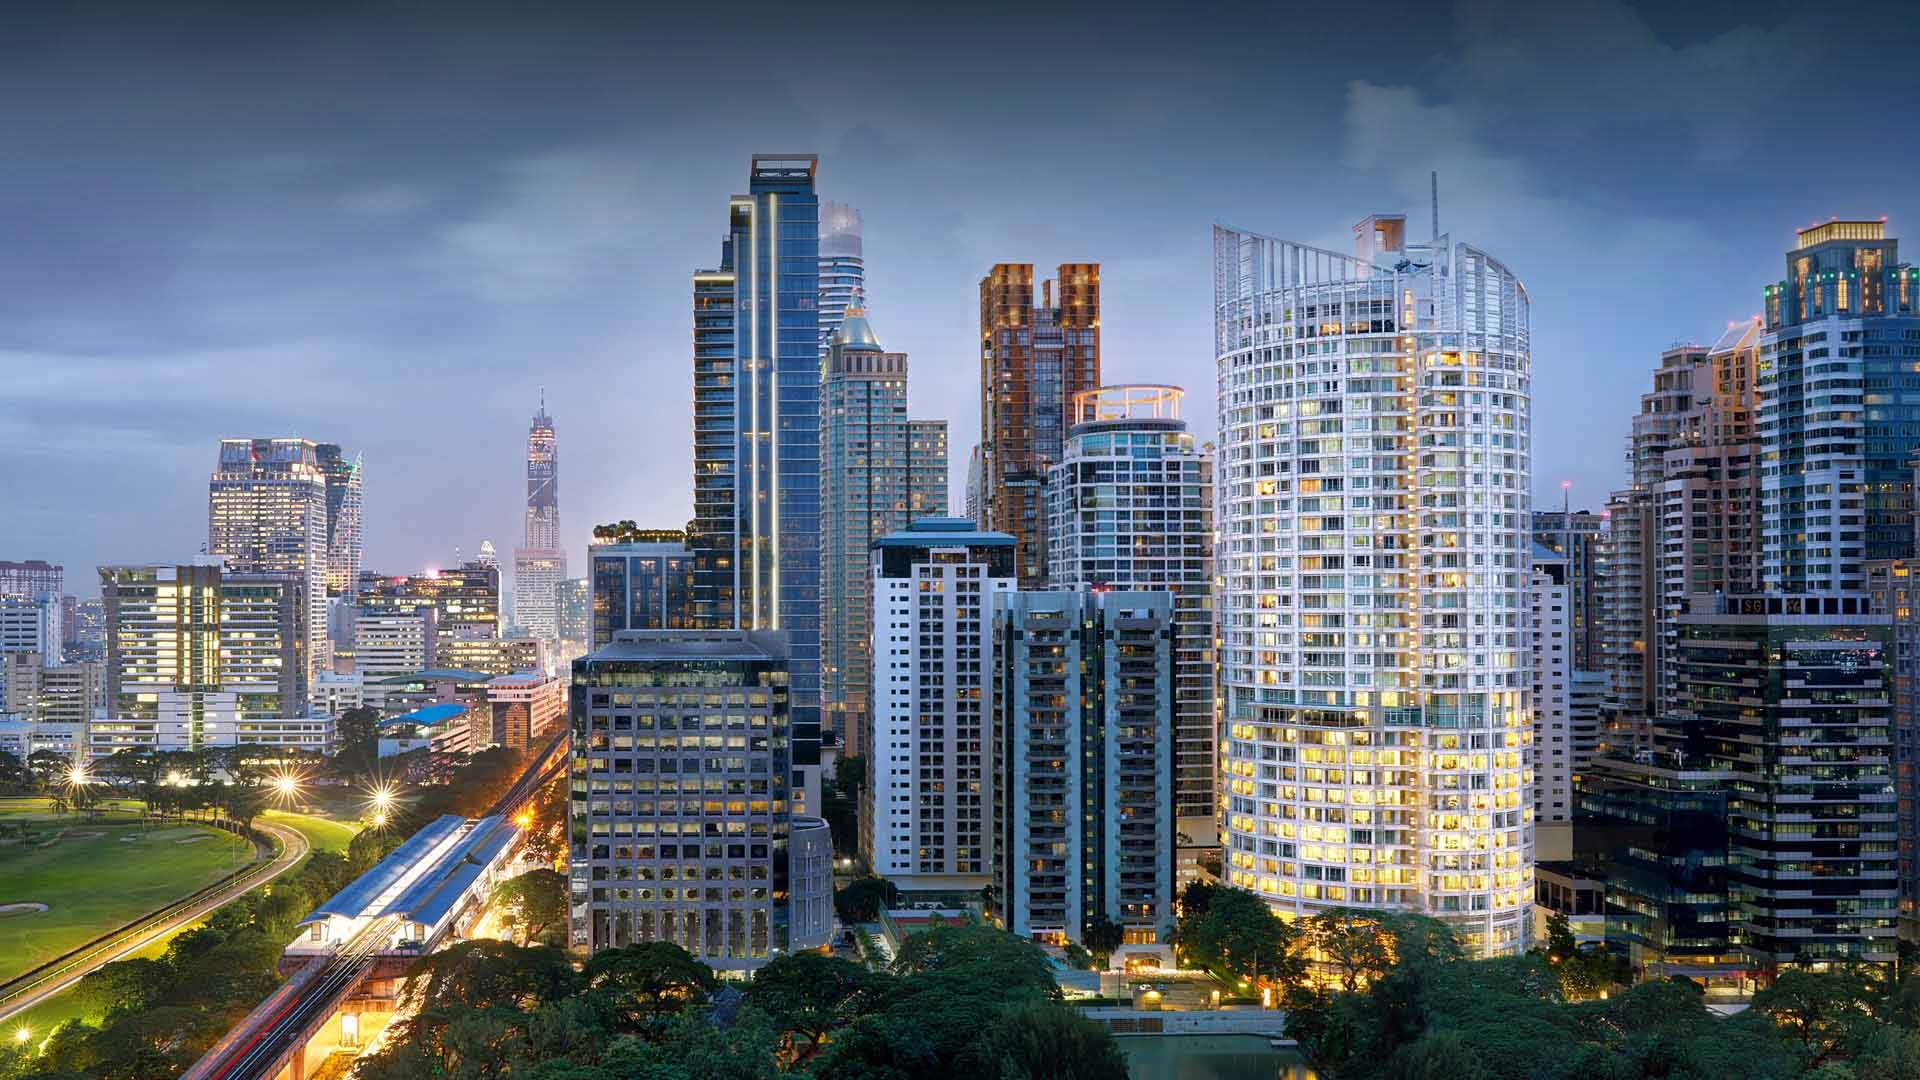 https://assets.anantara.com/image/upload/q_auto/media/minor/anantara/images/anantara-baan-rajprasong-bangkok-serviced-suites/the-resort/anantara_baan_rajprasong_exterior_header_1920x1080.jpg